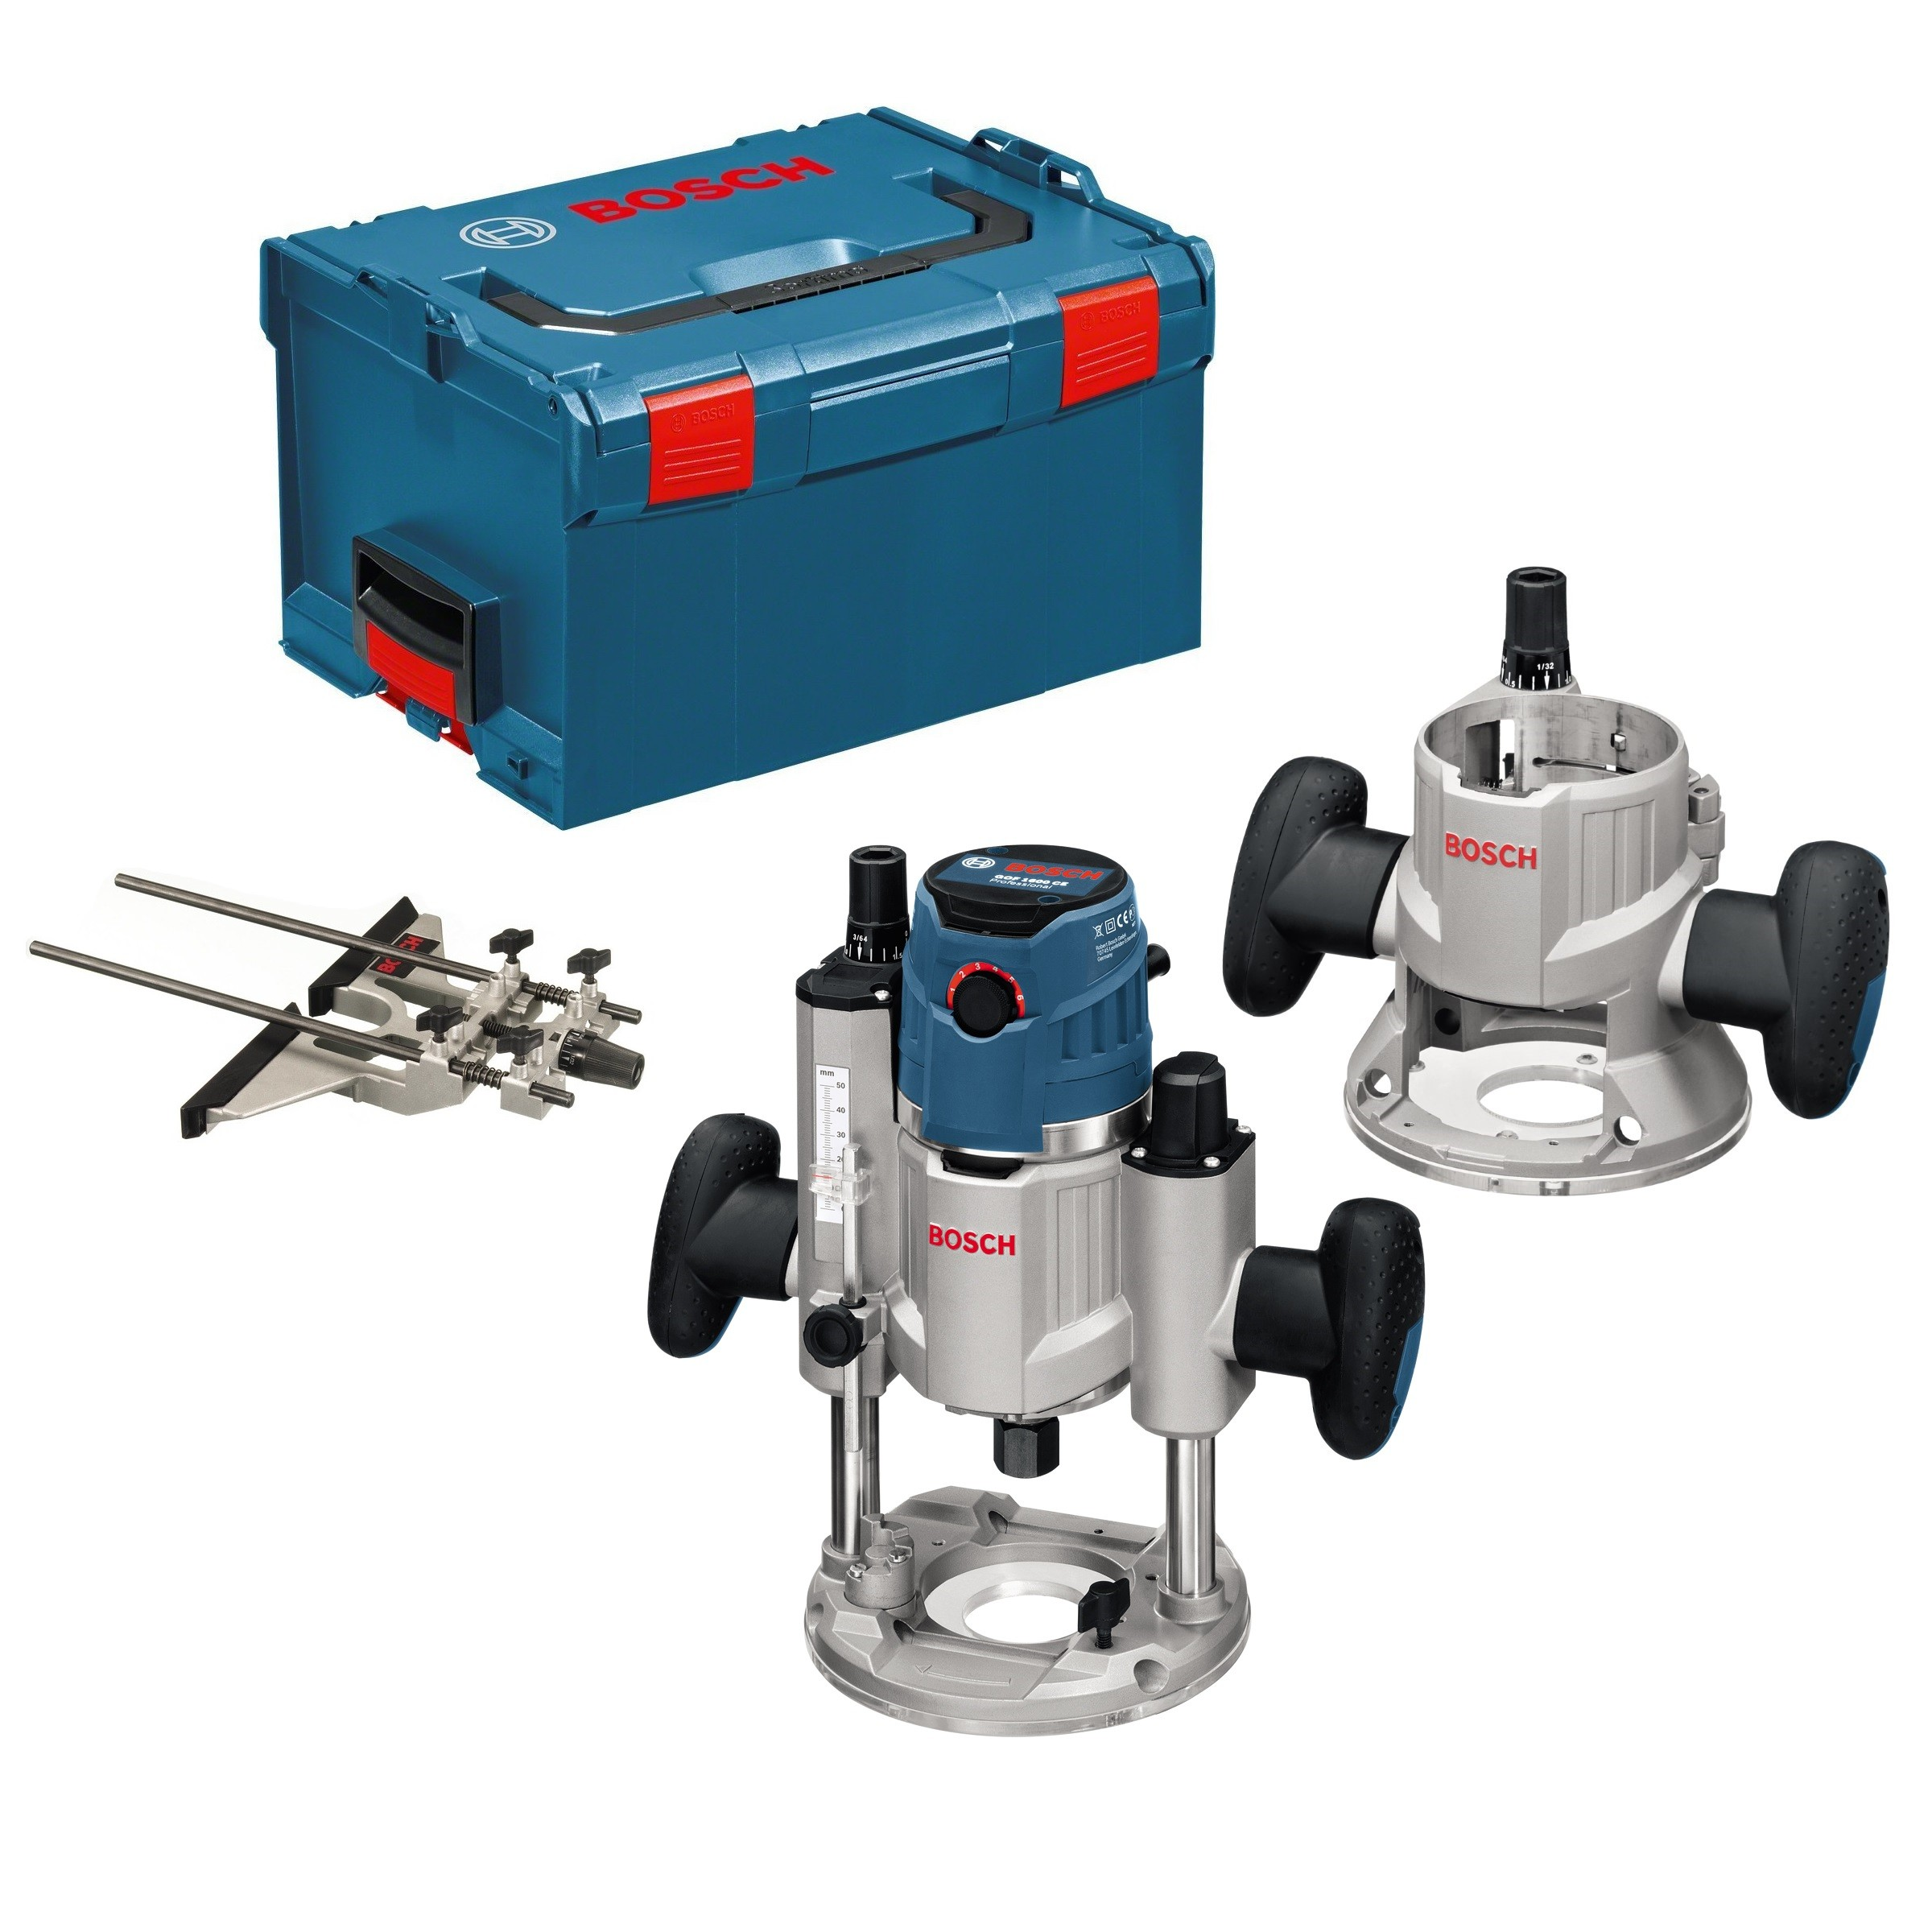 "Bosch GMF 1600 CE Professional Multifunction 1/4"" and 1/2"" Router"